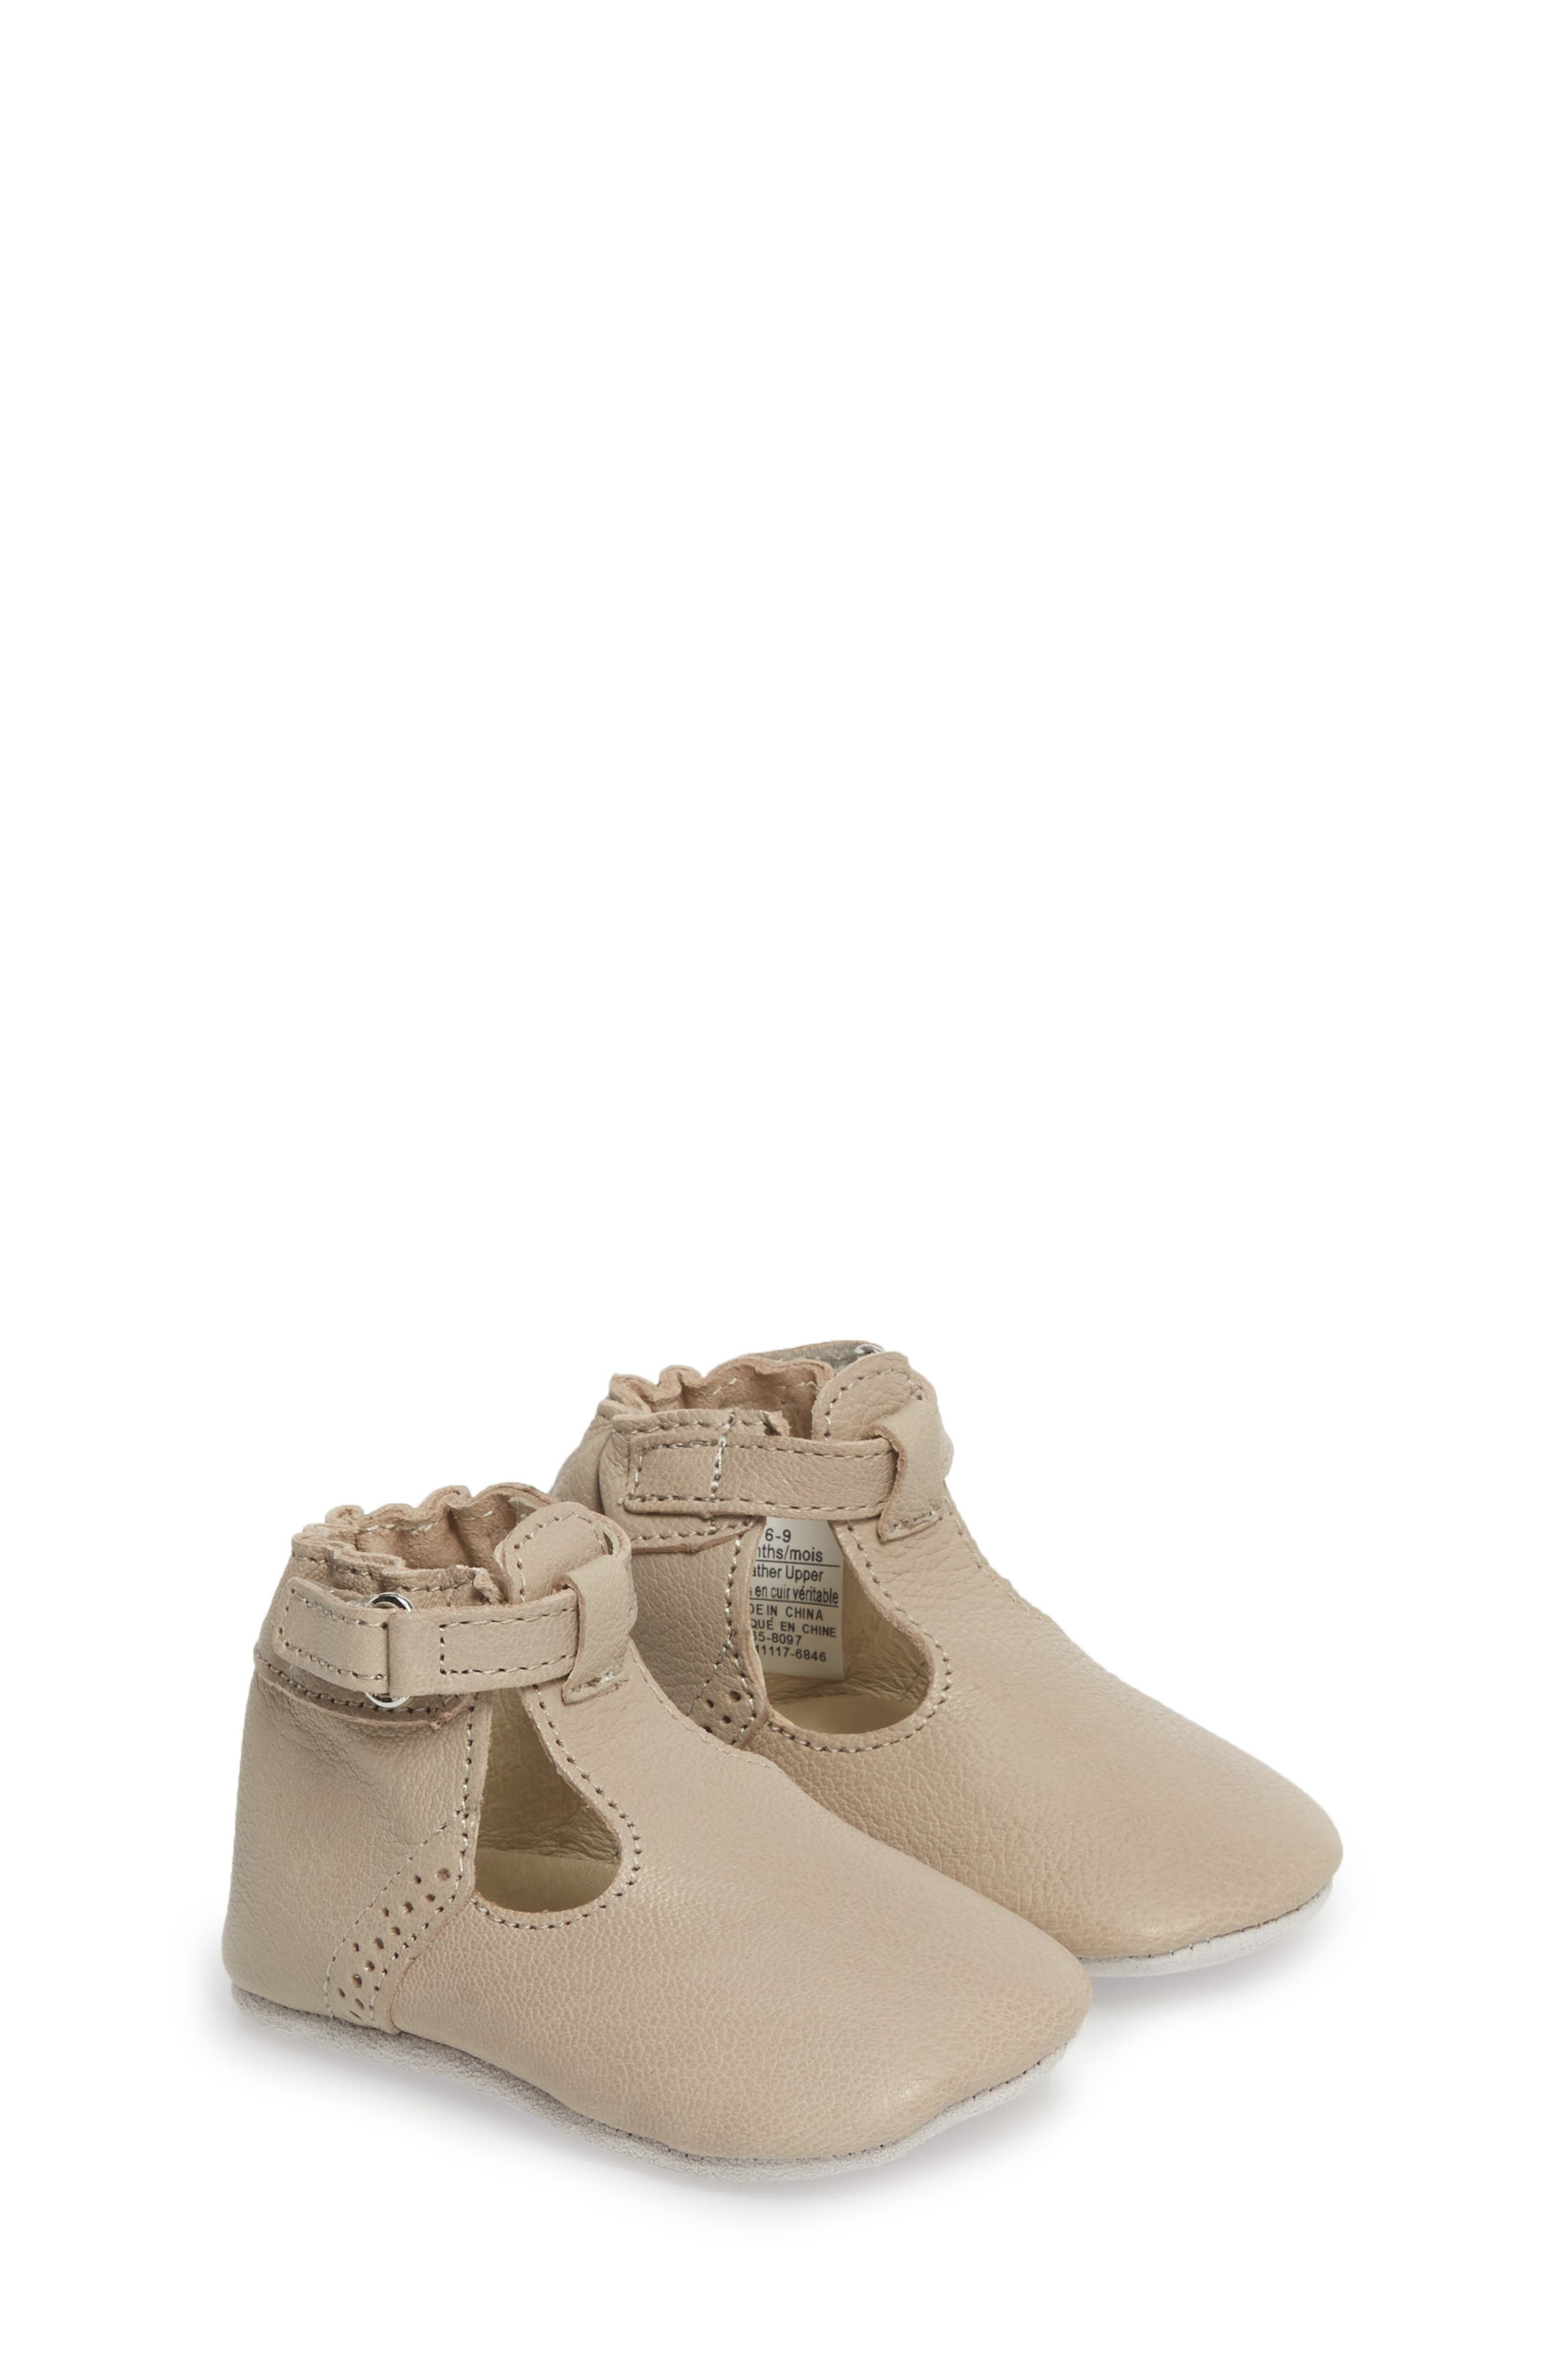 Penny T-Strap Mary Jane Crib Shoe,                             Alternate thumbnail 3, color,                             Taupe